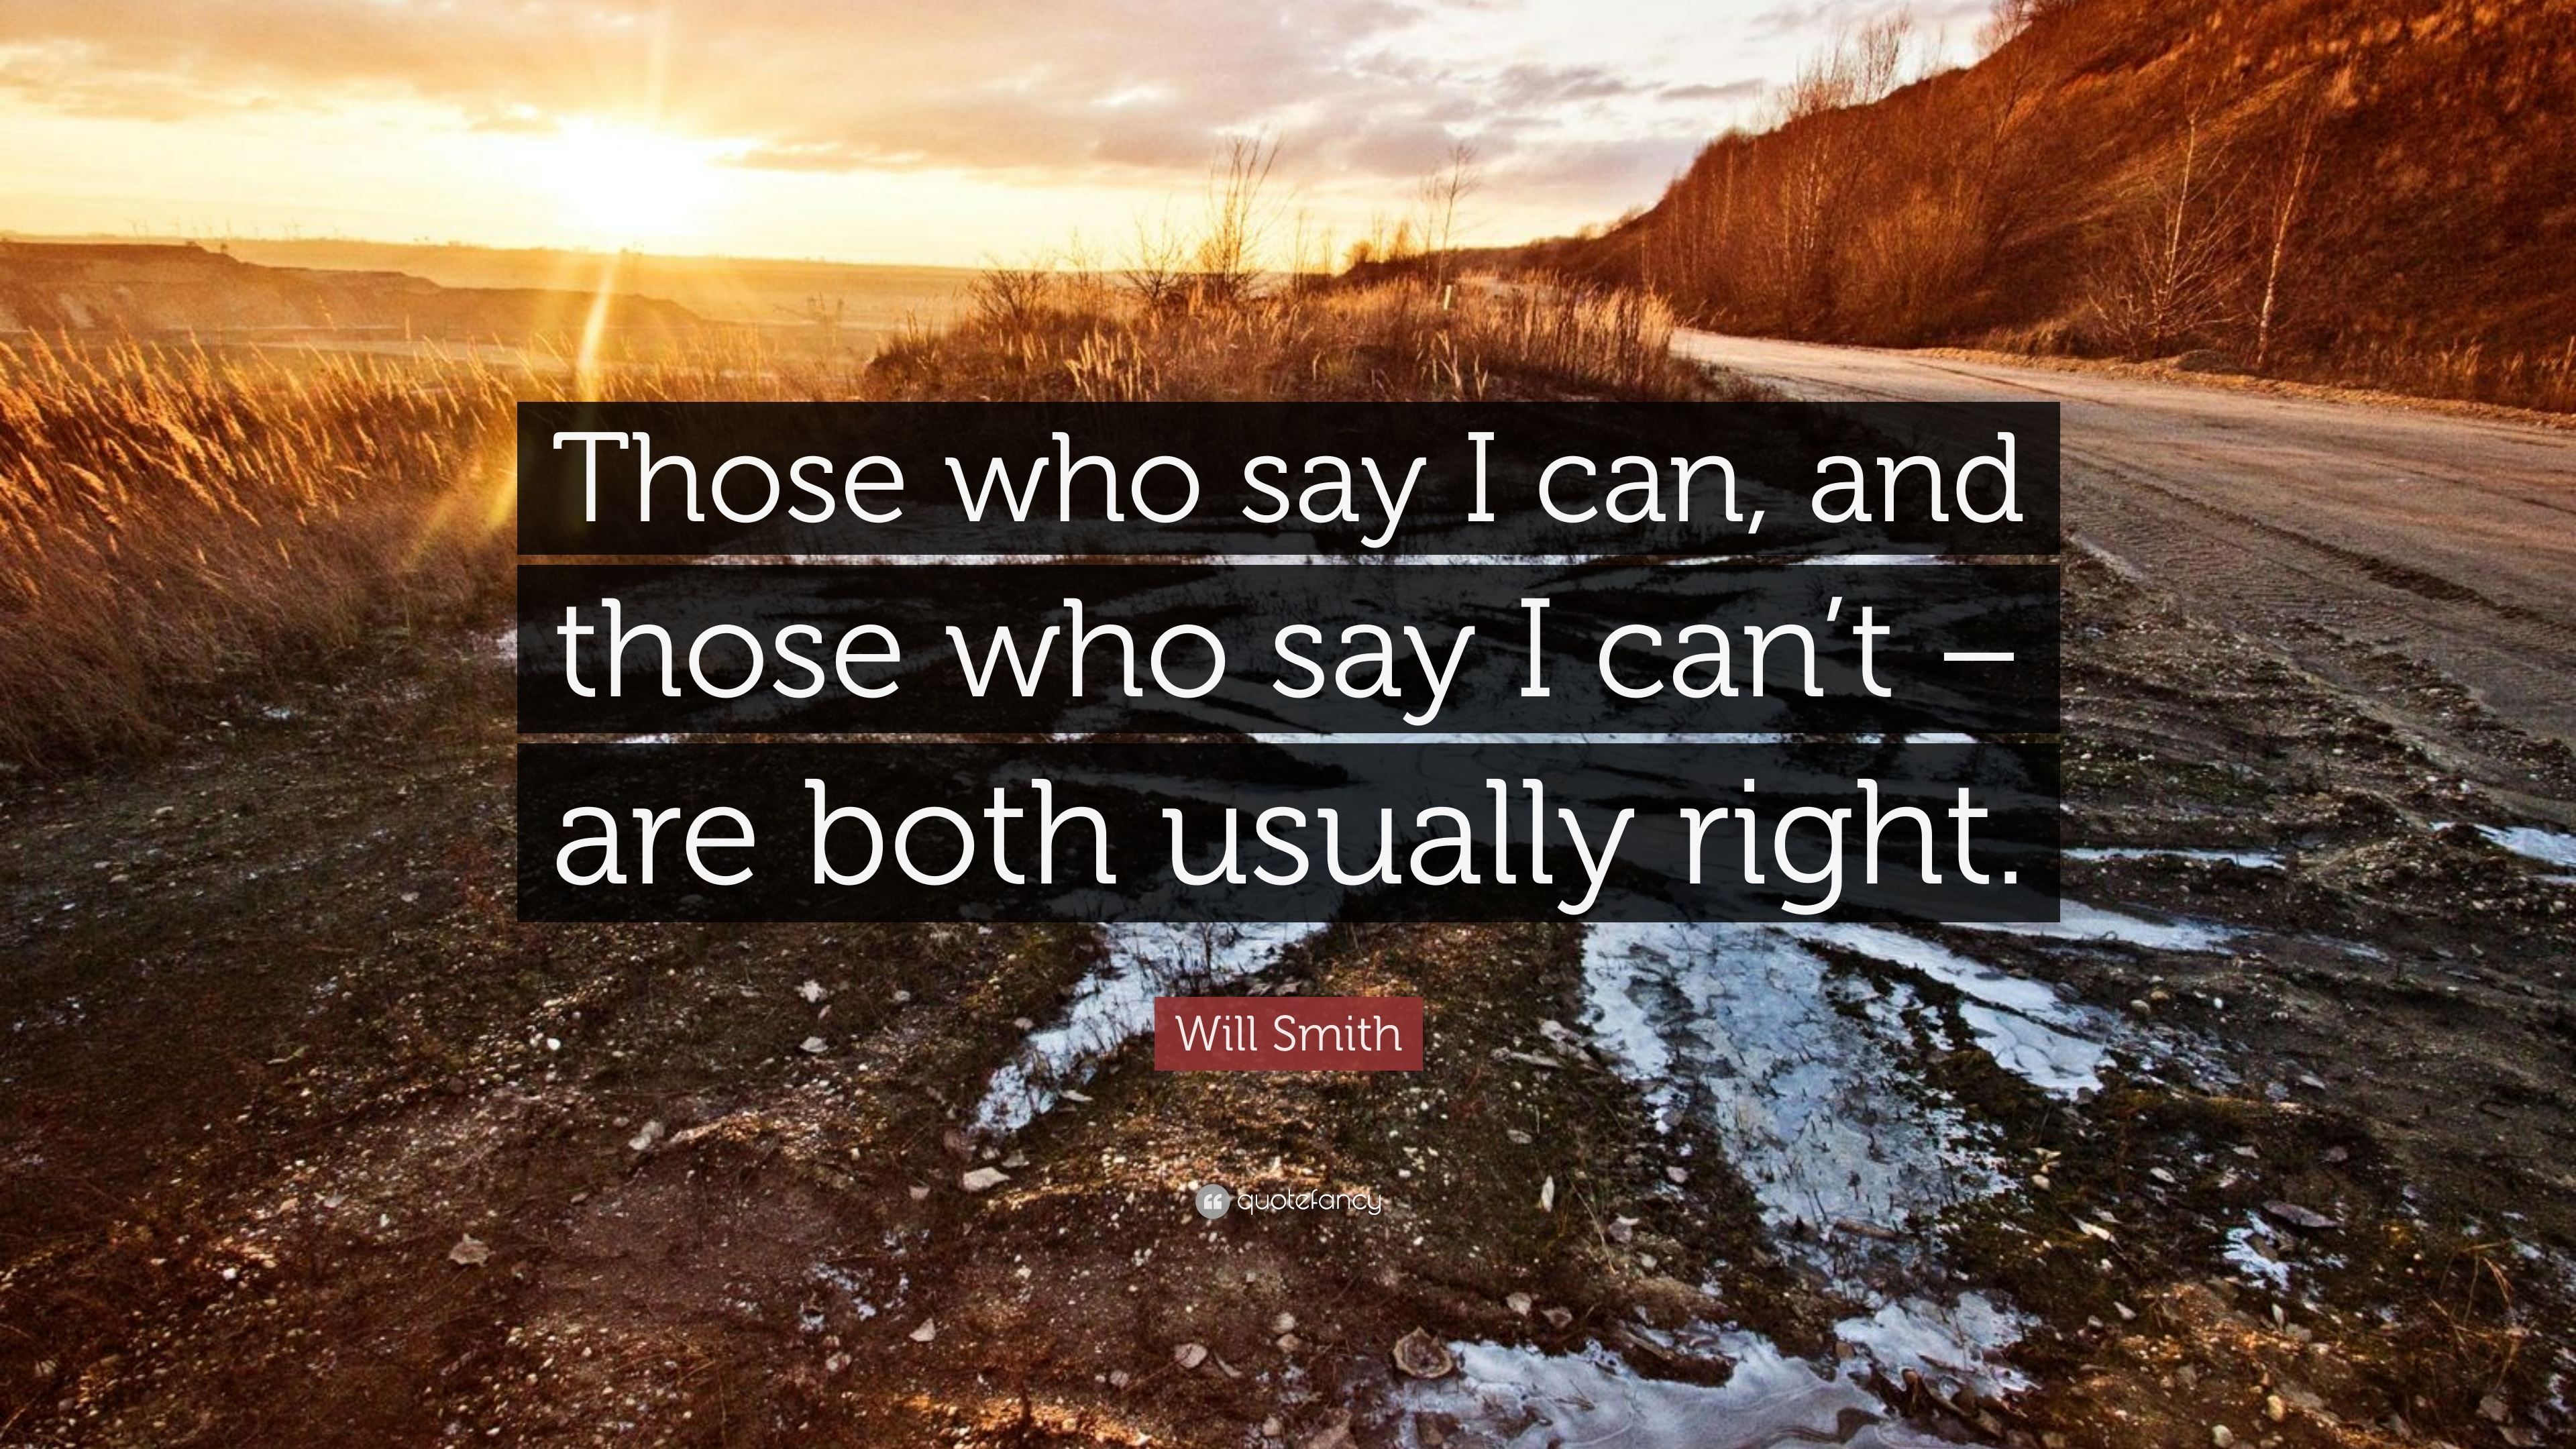 Will Smith Quote: U201cThose Who Say I Can, And Those Who Say I